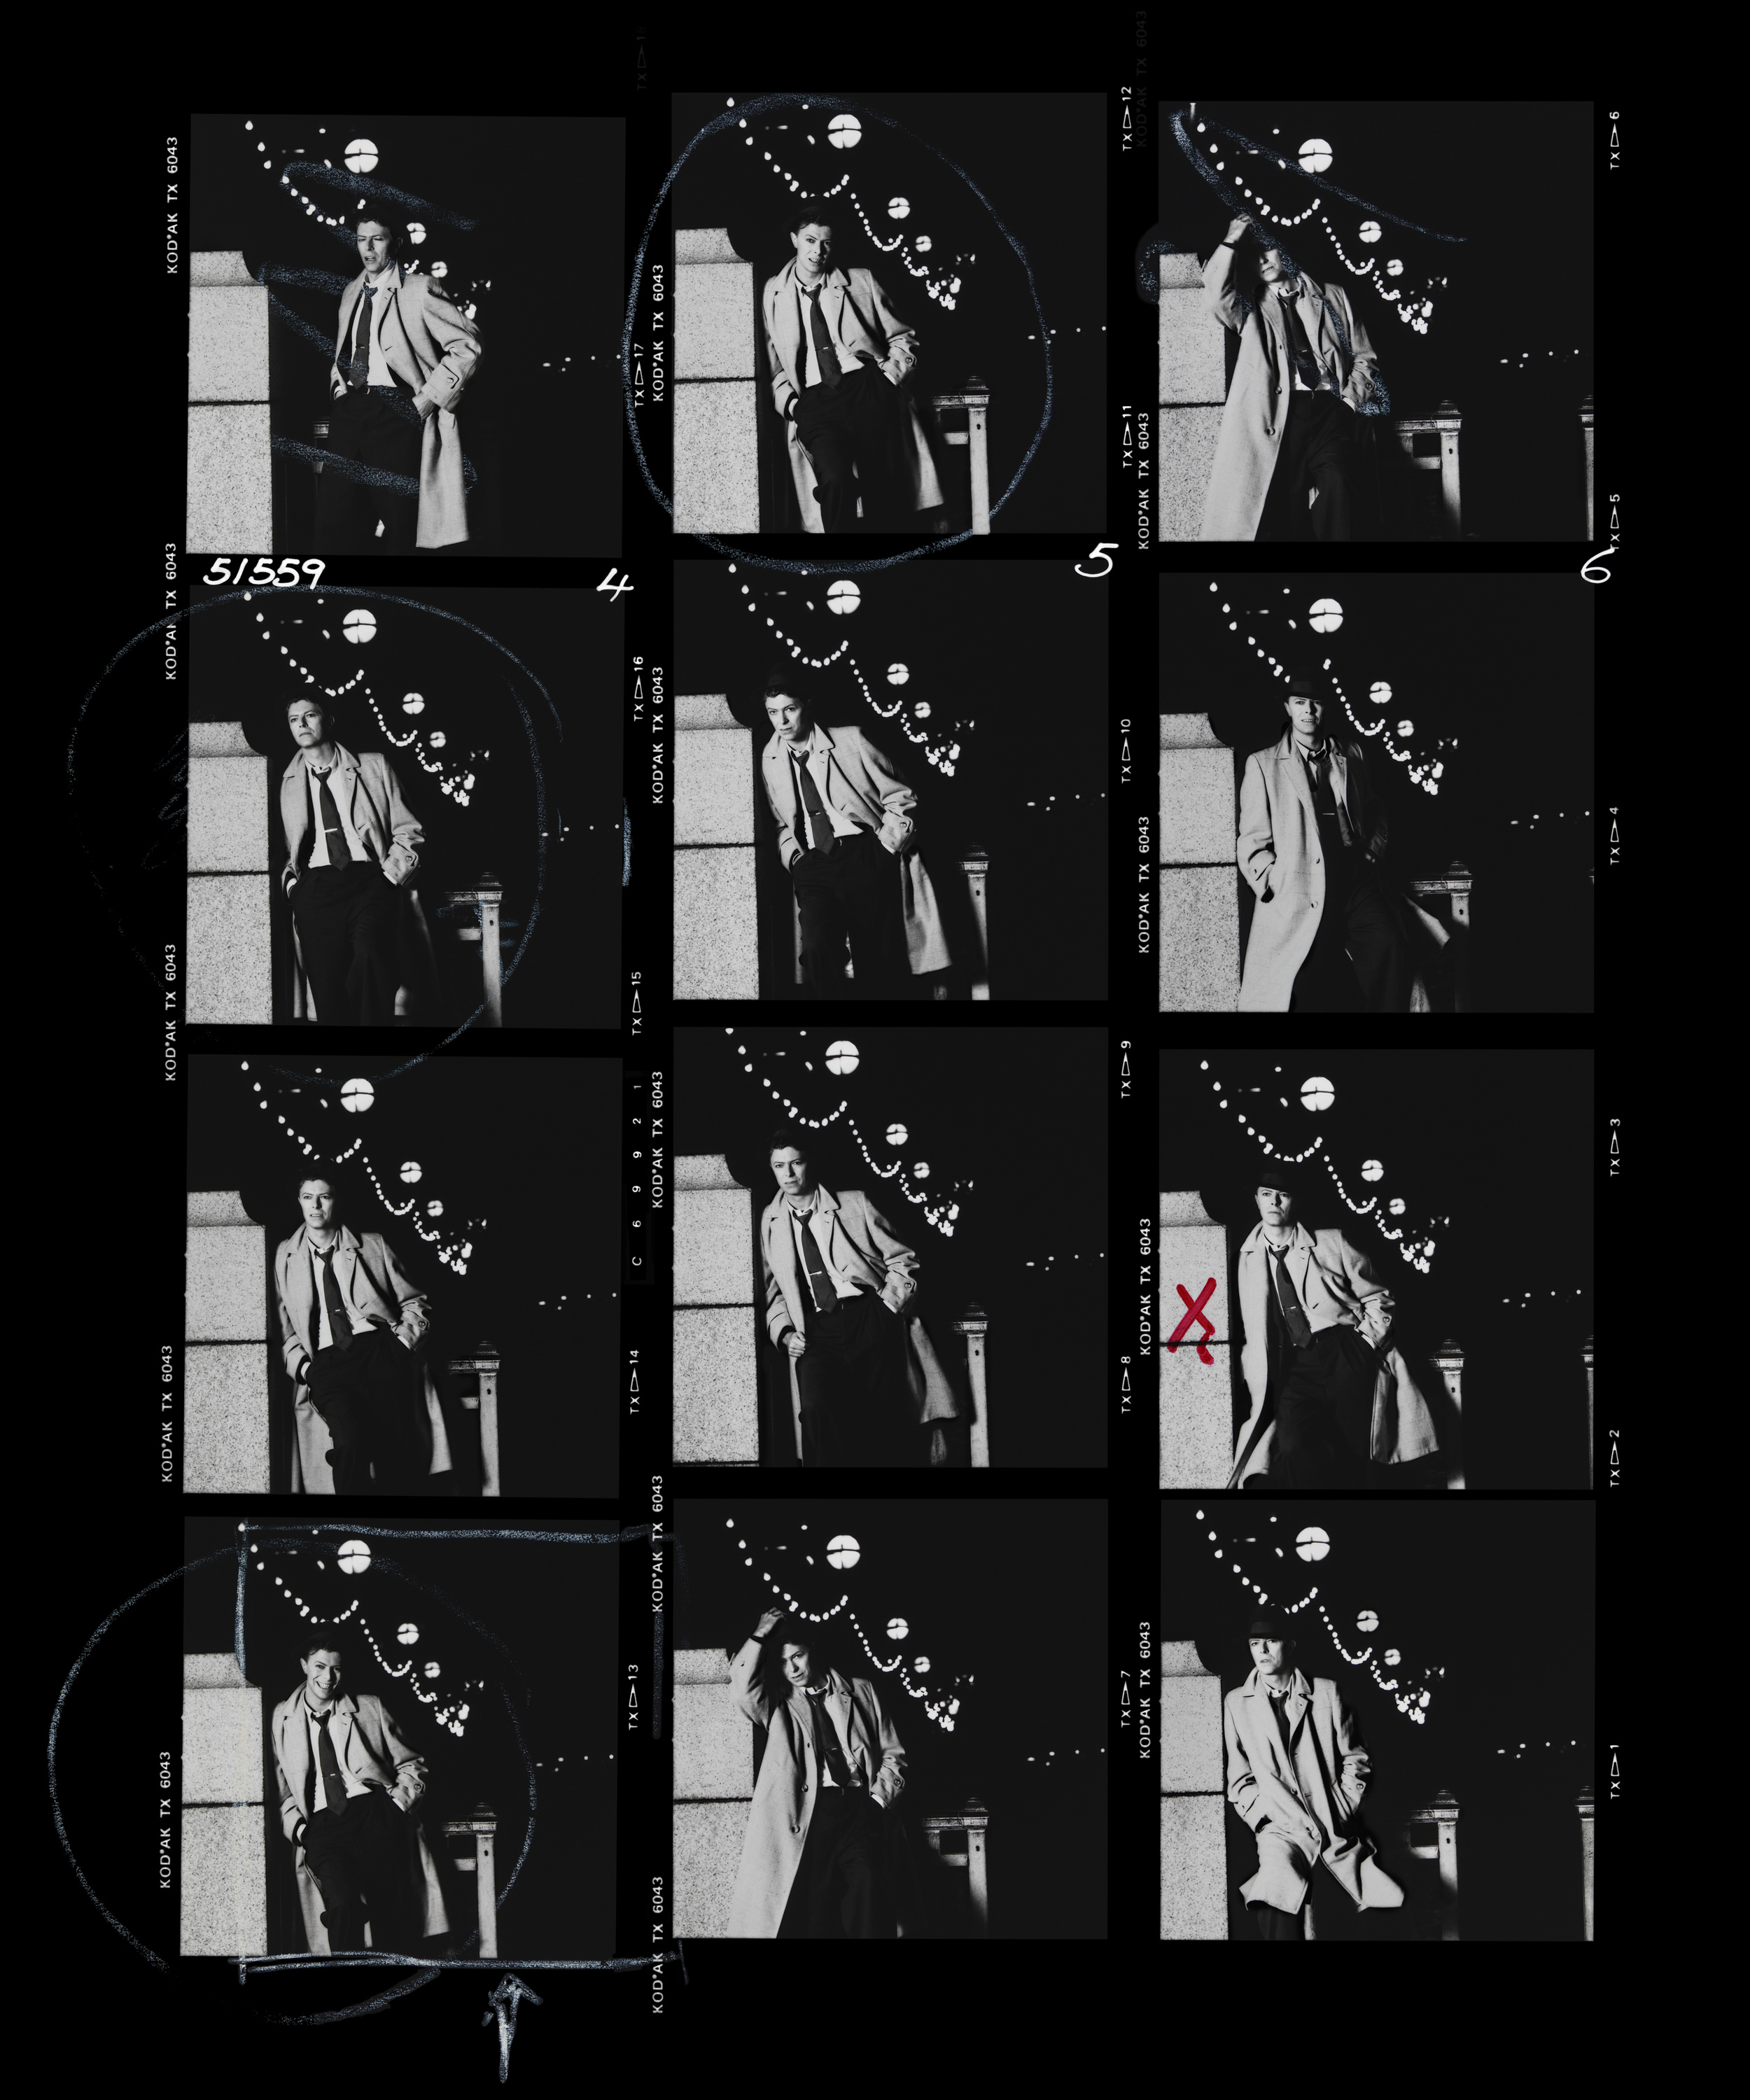 Absolute Beginners Contact Sheet 1986  David Bowie is one if the easiest people to work with, he's so good in front of the camera that you can do a record cover in a single roll of film. When you are on a film shoot nothing endears you to the Director more than the ability to shoot fast.  Everything was pre-lit and tested beforehand, all it needed was for David to step into the frame and pose for three minutes.  Contact sheets can tell you a lot about both photographer and sitter, the twelve frames on a roll is now a thing of the past but back then it was the order of the day.  When you have to hand over the sheets to the publicist you never know what you will get back from the artist, sometimes with Rock Stars only a single frame from a dozen rolls is marked, sometimes they approve three or four, but that is not the case here.  In the right hand strip you can see a small X, this was the choice of David's management, safe as houses, but also kind of boring.  On the whole page you can see exactly the way David marked it up, excluding only two frames as a bad photo, ignoring seven more frames as they were OK but not great.  Then he has circled three of the frames including 4C, the one where he is smiling. The Art Director then marked a square around that same photo. I was very happy David and the AD chose it, but this surprised everyone who worked for him as he has never, before or since, smiled on a record cover.